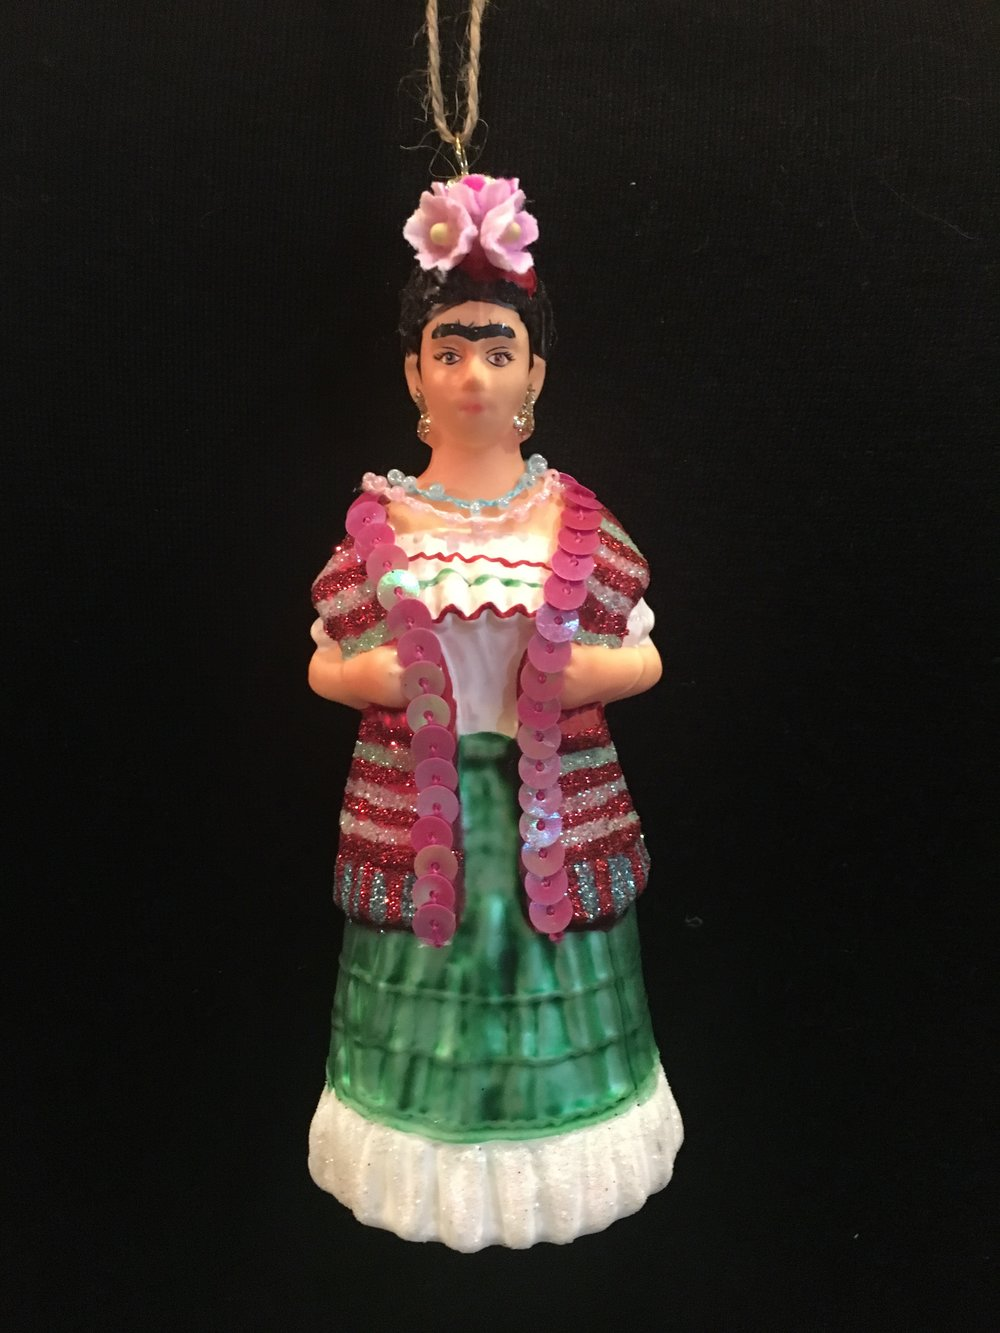 FranklinsGeneral Store - Is getting a new ornament every year part of your family tradition? If so, head on over to Franklins to pick up this beautiful Frida Kahlo ornament. $16.99